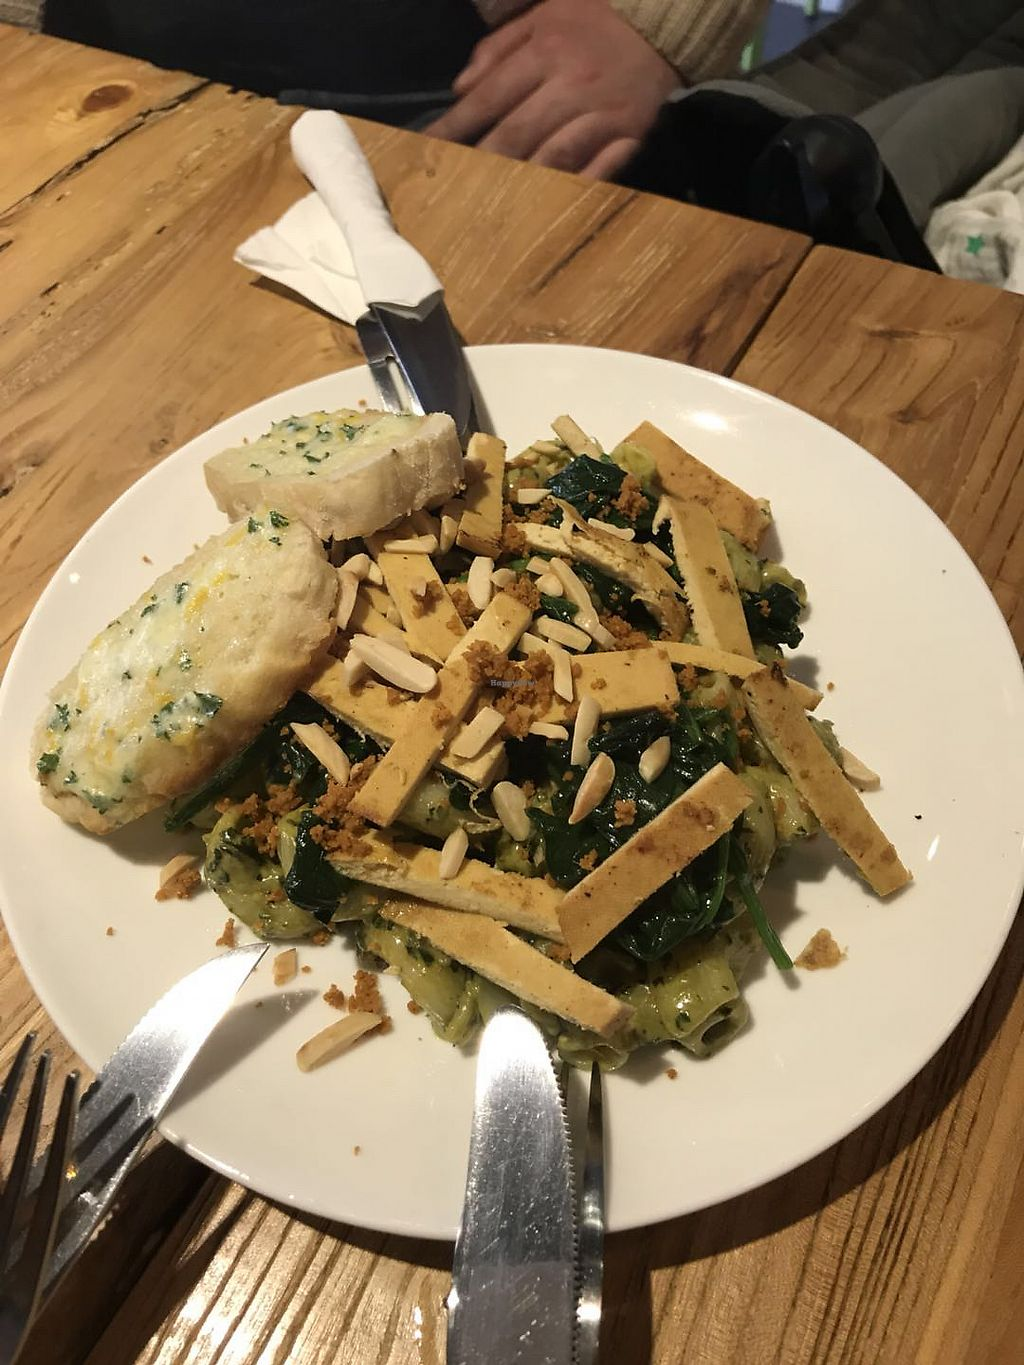 """Photo of Happy Buddha  by <a href=""""/members/profile/silverlady"""">silverlady</a> <br/>Pesto pasta  <br/> March 15, 2018  - <a href='/contact/abuse/image/61106/370997'>Report</a>"""